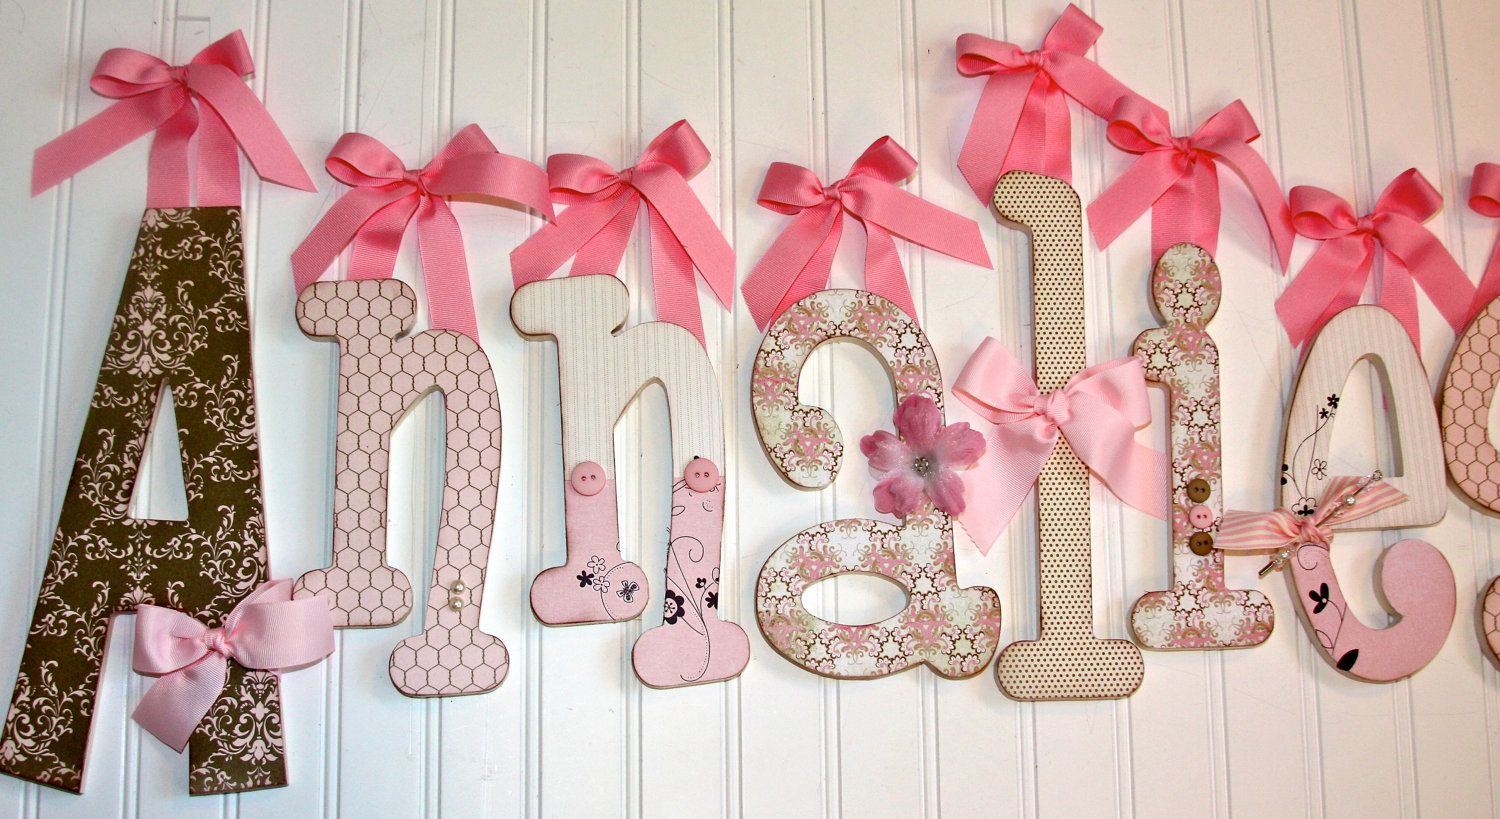 """Anna"" idea: 9 - 10"" Wooden Letters - Wood Nursery Letters - Wood Letters"